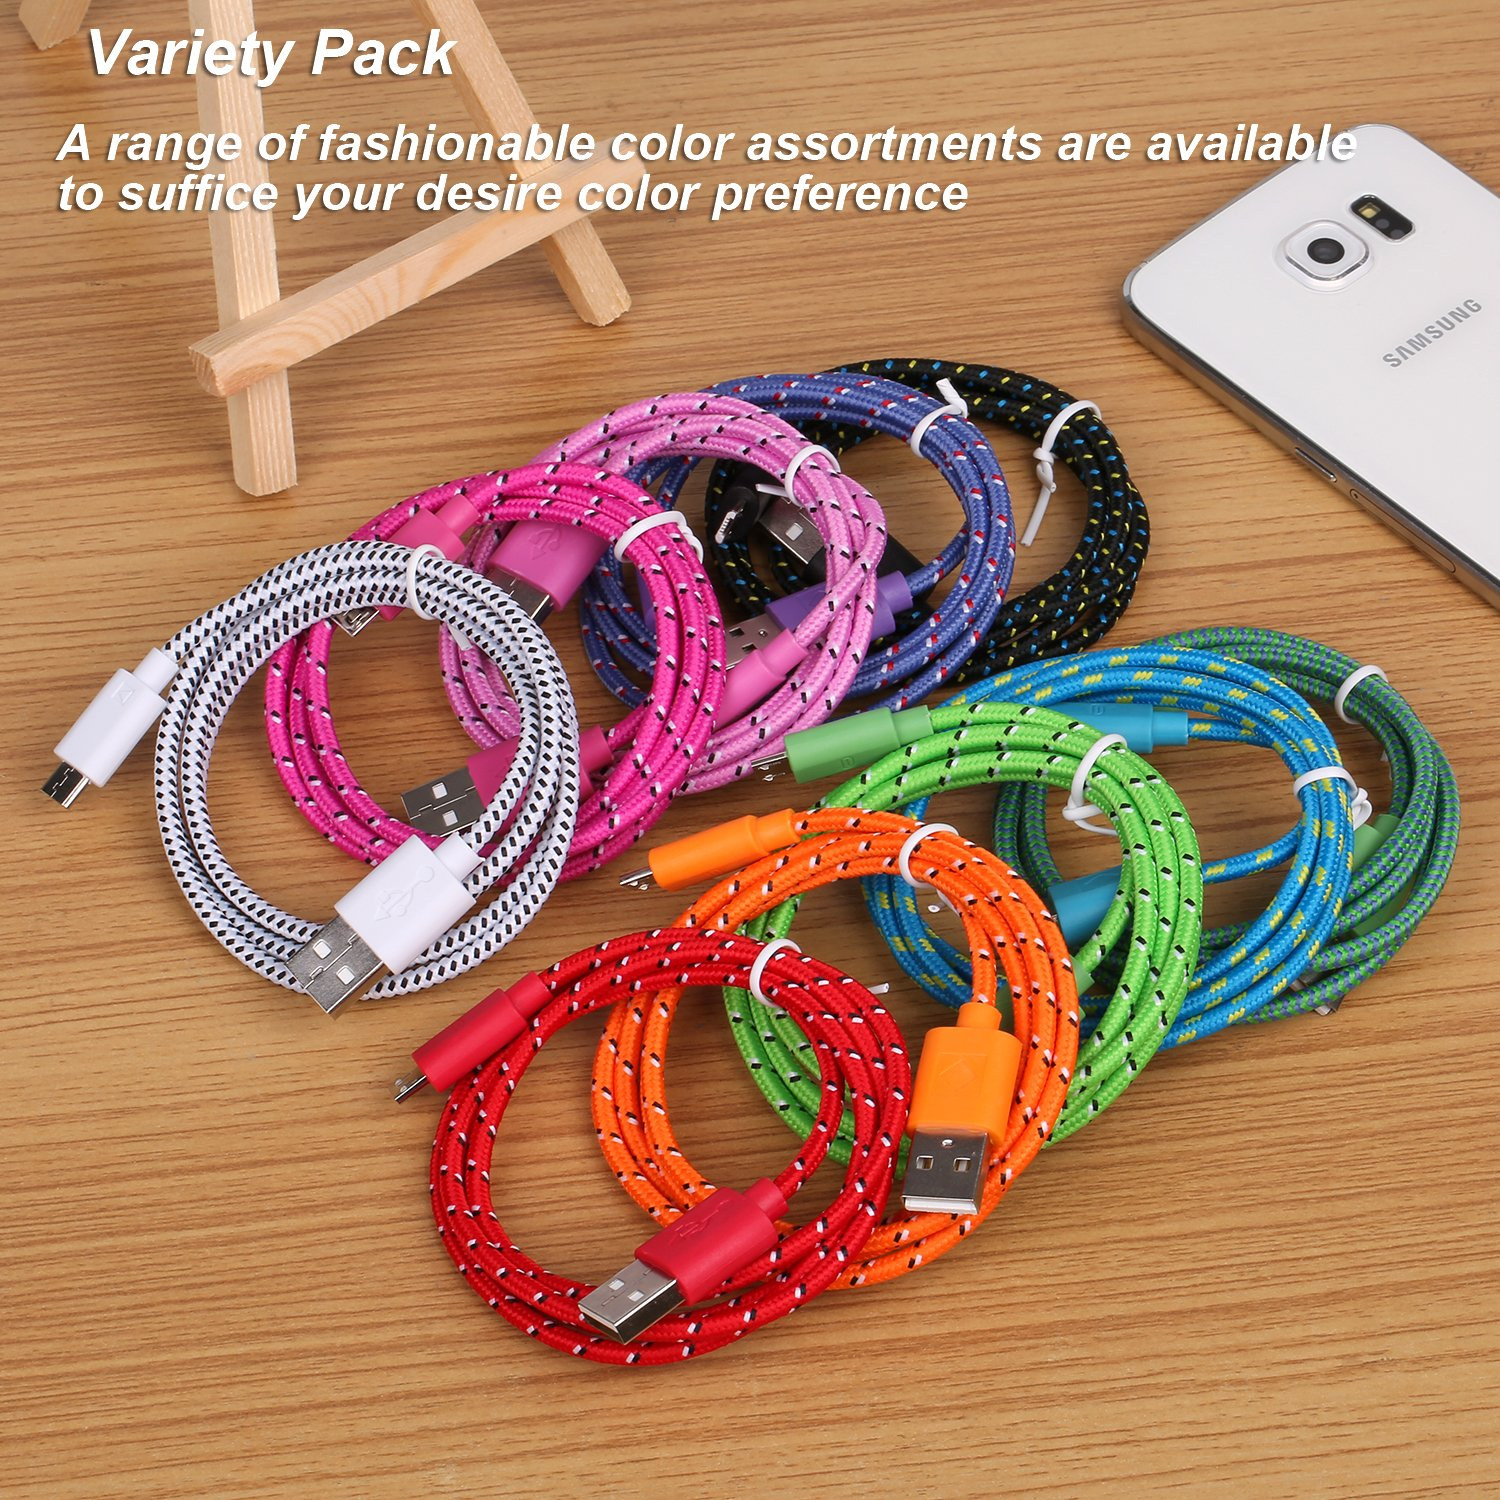 Micro USB Charger, Eversame 10-Pack Colorful 3Ft 1M Nylon Braided USB 2.0 A Male to Micro B Data Sync and Charging Cable Cord For Android Phones, Samsung Galaxy S6 Edge Plus/Note 5, HTC, LG and More by Eversame (Image #7)